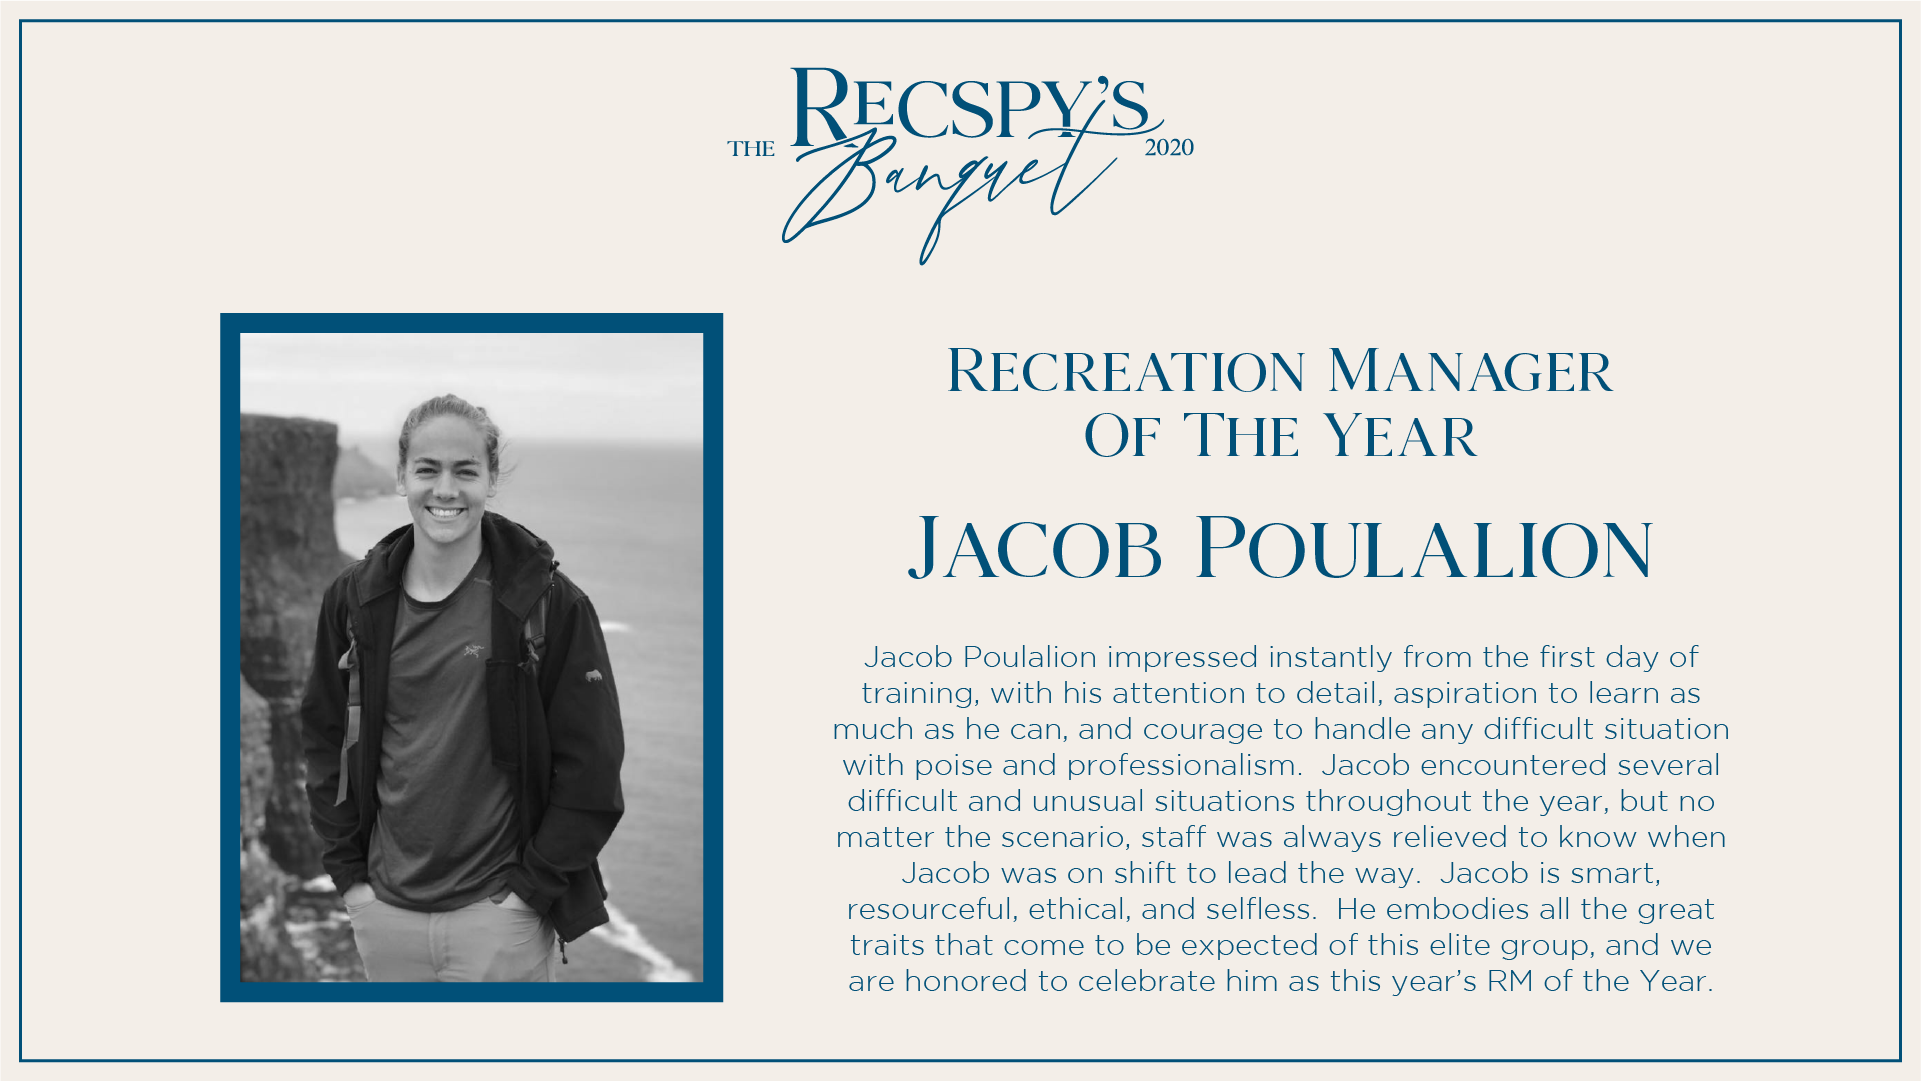 Jacob Poulalion: Recreation Manager of the Year